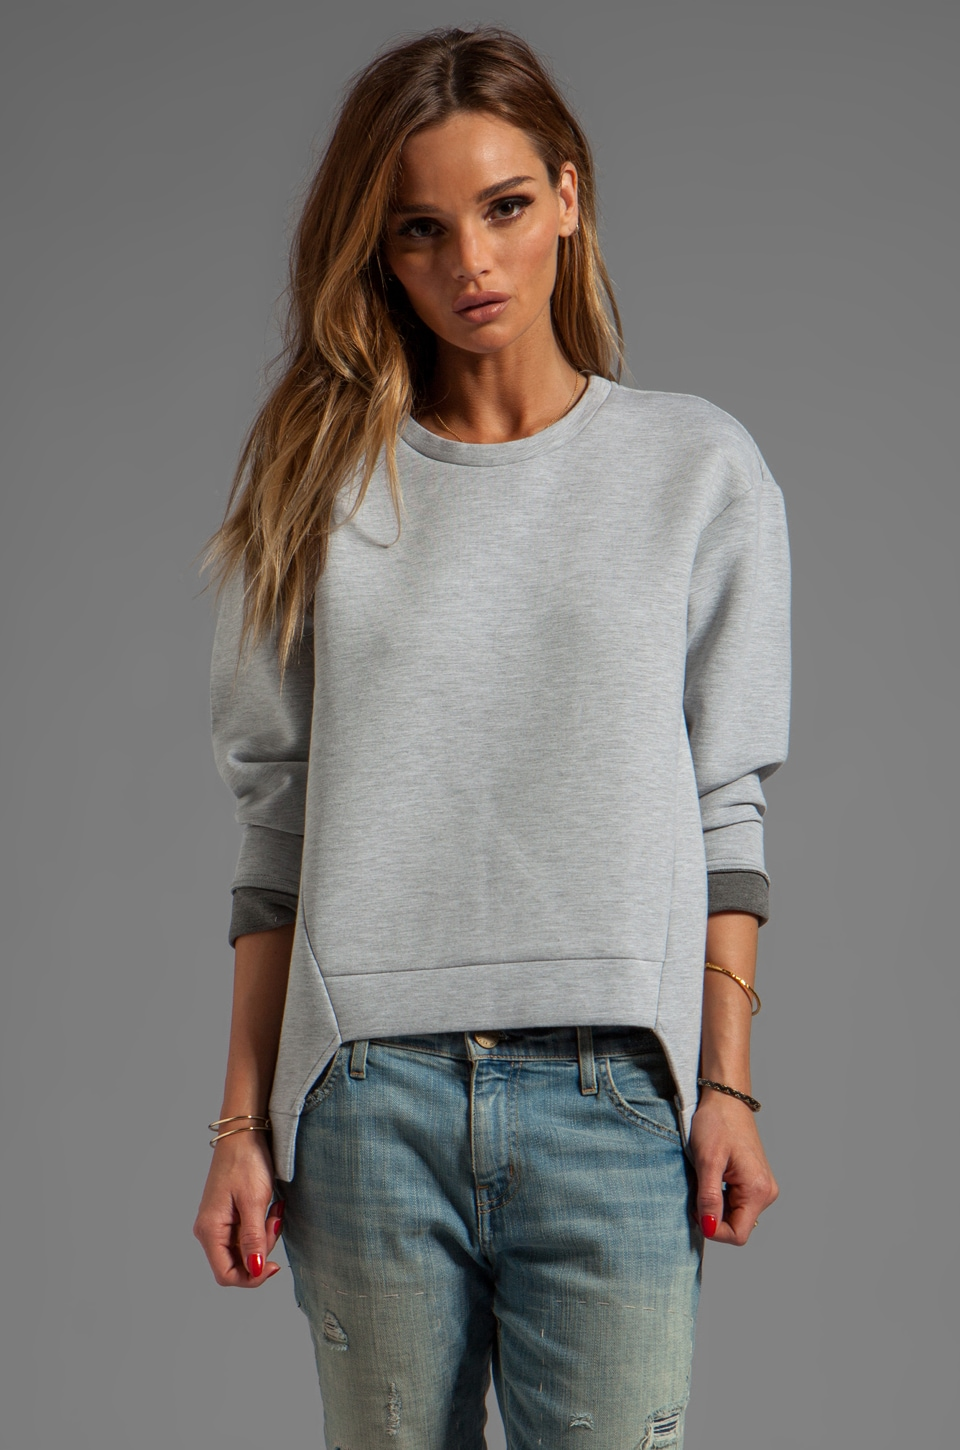 Funktional Discovery Sweatshirt in Grey